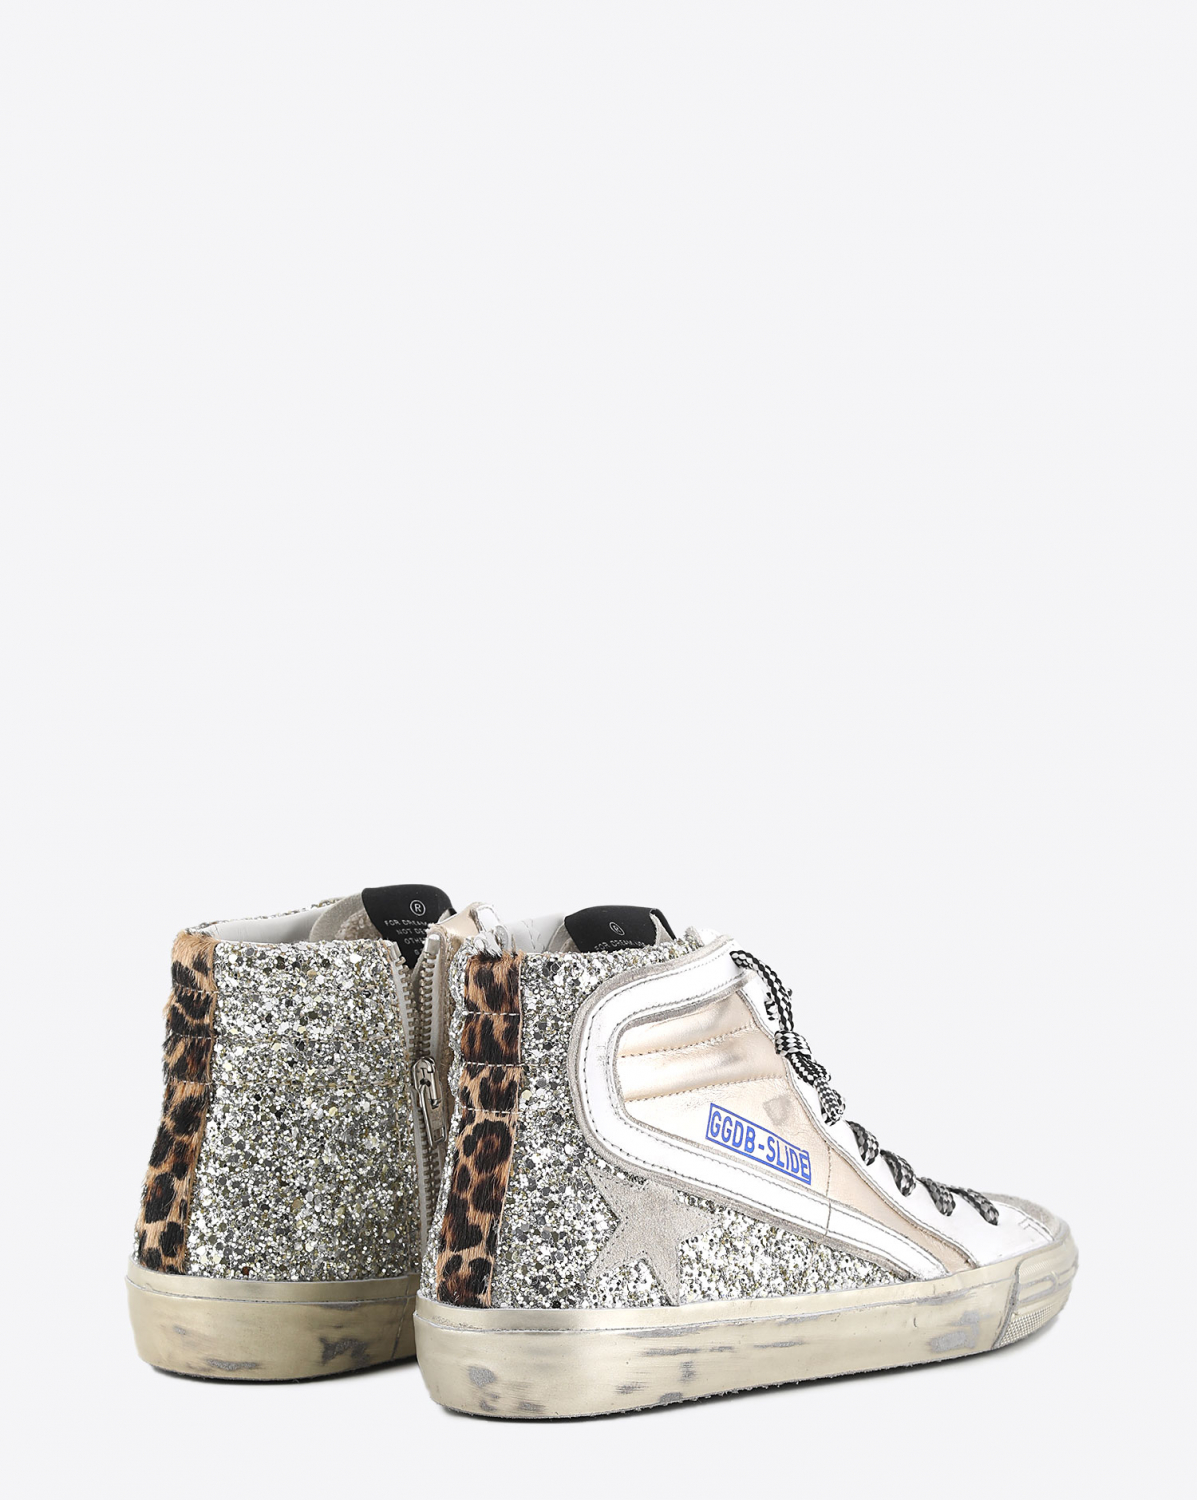 Golden Goose Woman Collection Slide - Gold Ice Leo 65147